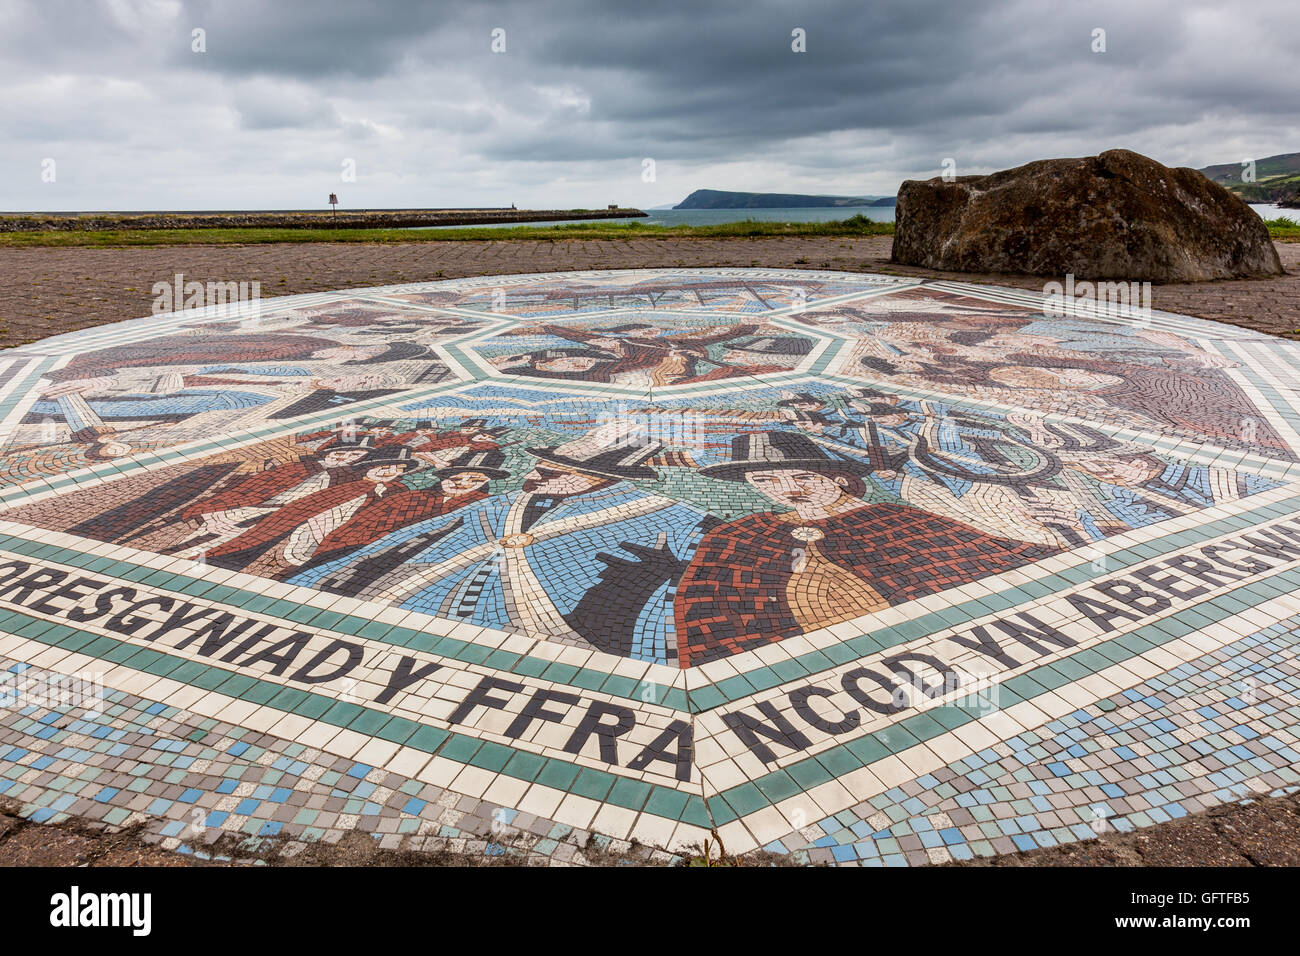 Mosaic commemorating the Last Invasion of Britain at Goodwick, Fishguard, Pembrokeshire, Wales - Stock Image